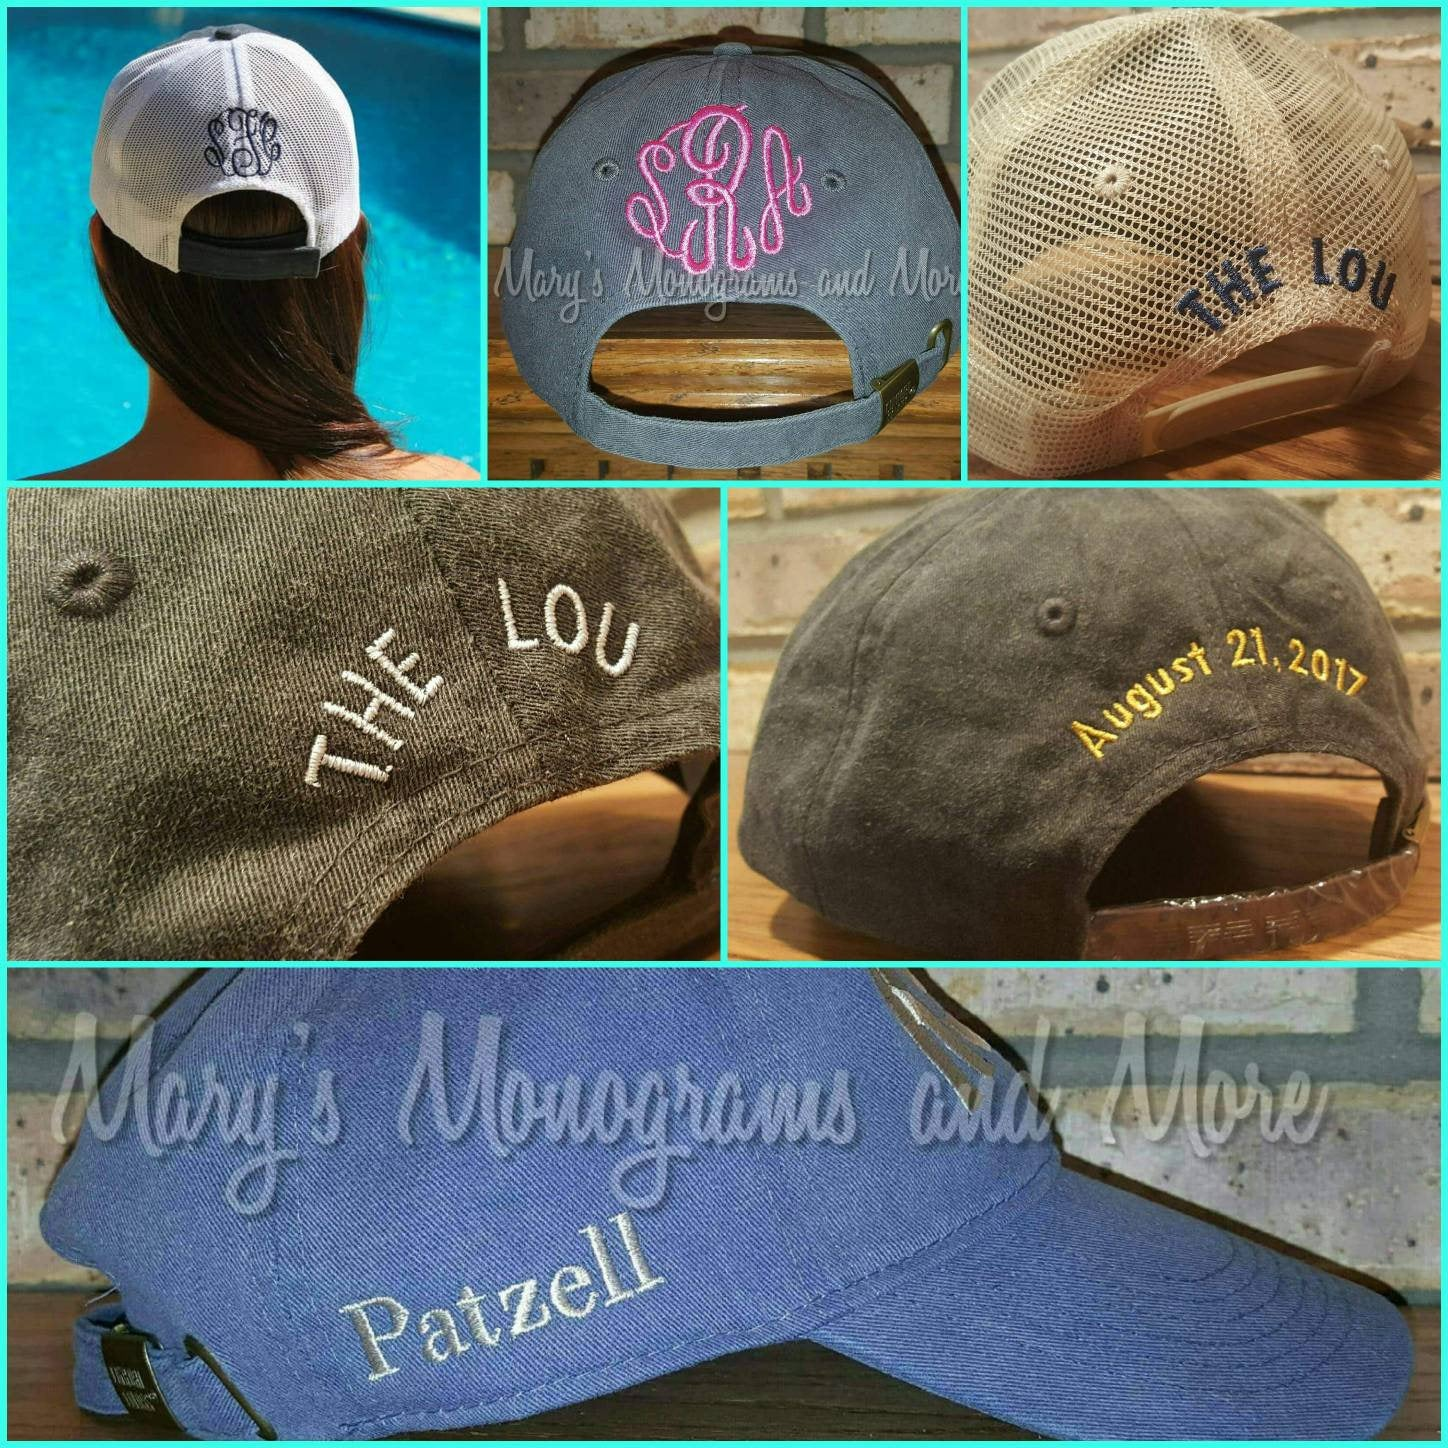 Just Another Day In Paradise Hat - Distressed Baseball Hat, Trucker Hat, Another Day In Paradise Cap, Can be Personalized or Monogrammed